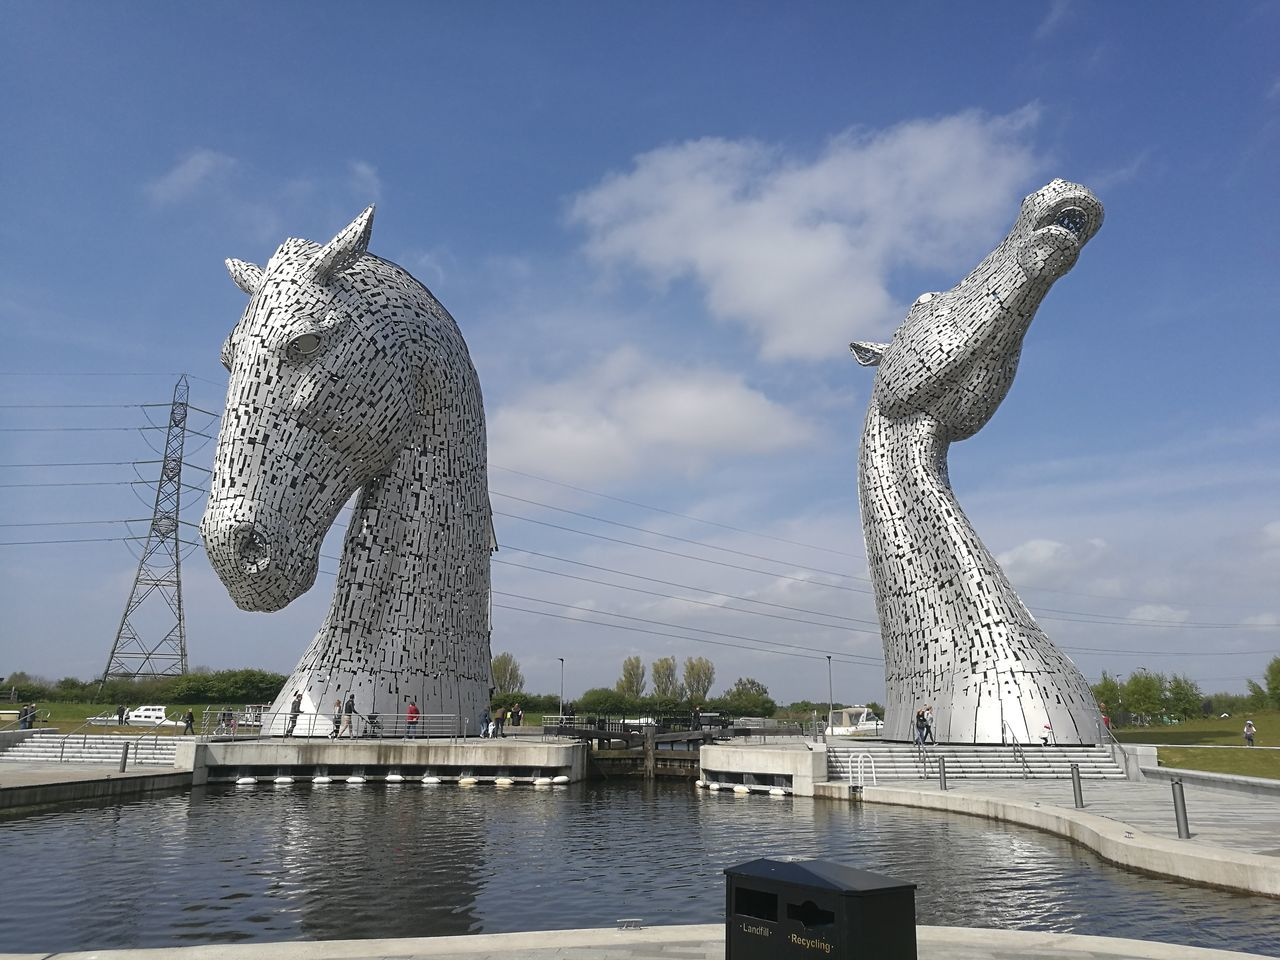 Water Spotted Outdoors Travel Destinations Animals In The Wild Day Animal Wildlife Sky No People Animal Themes Nature Kelpies Of Falkirk